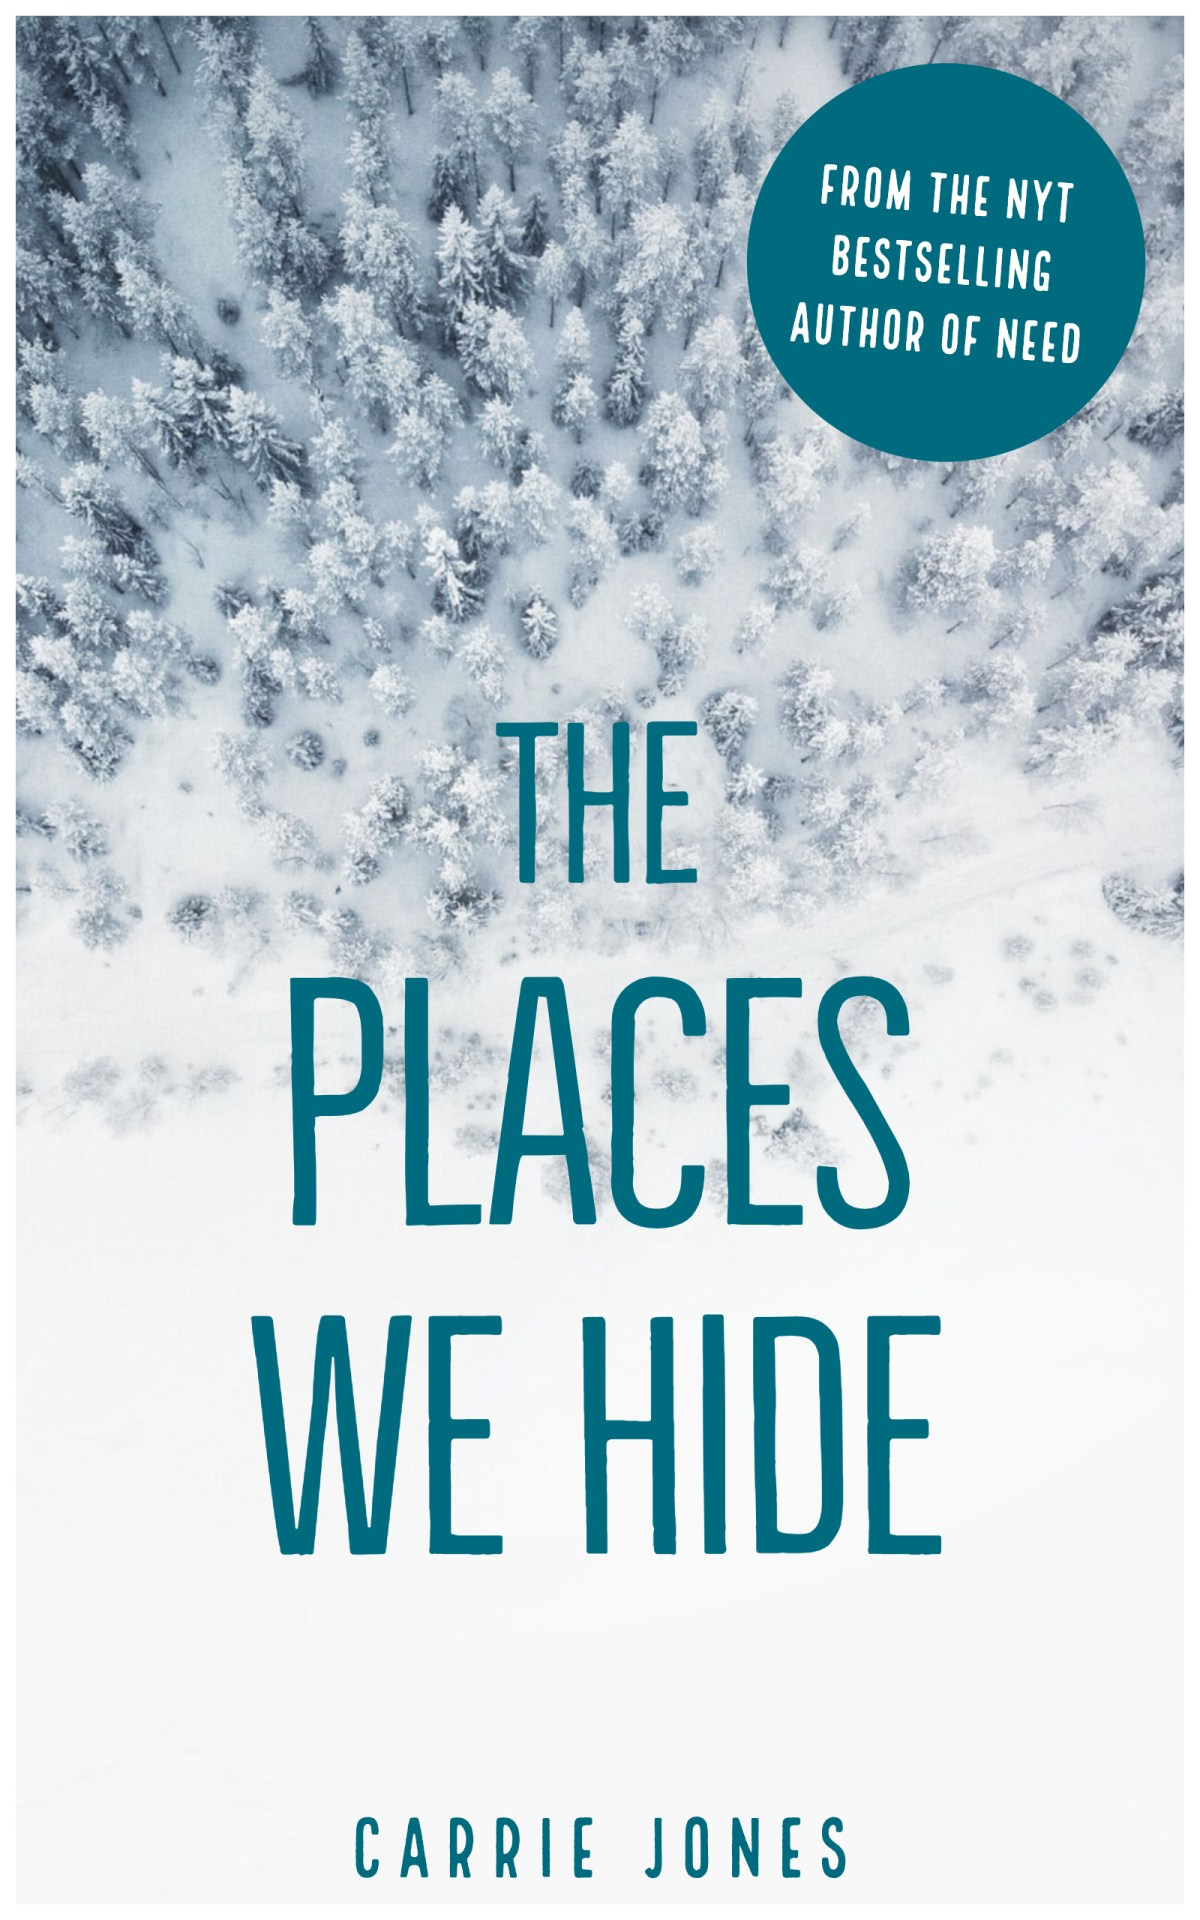 The Places We Hide by Carrie Jones